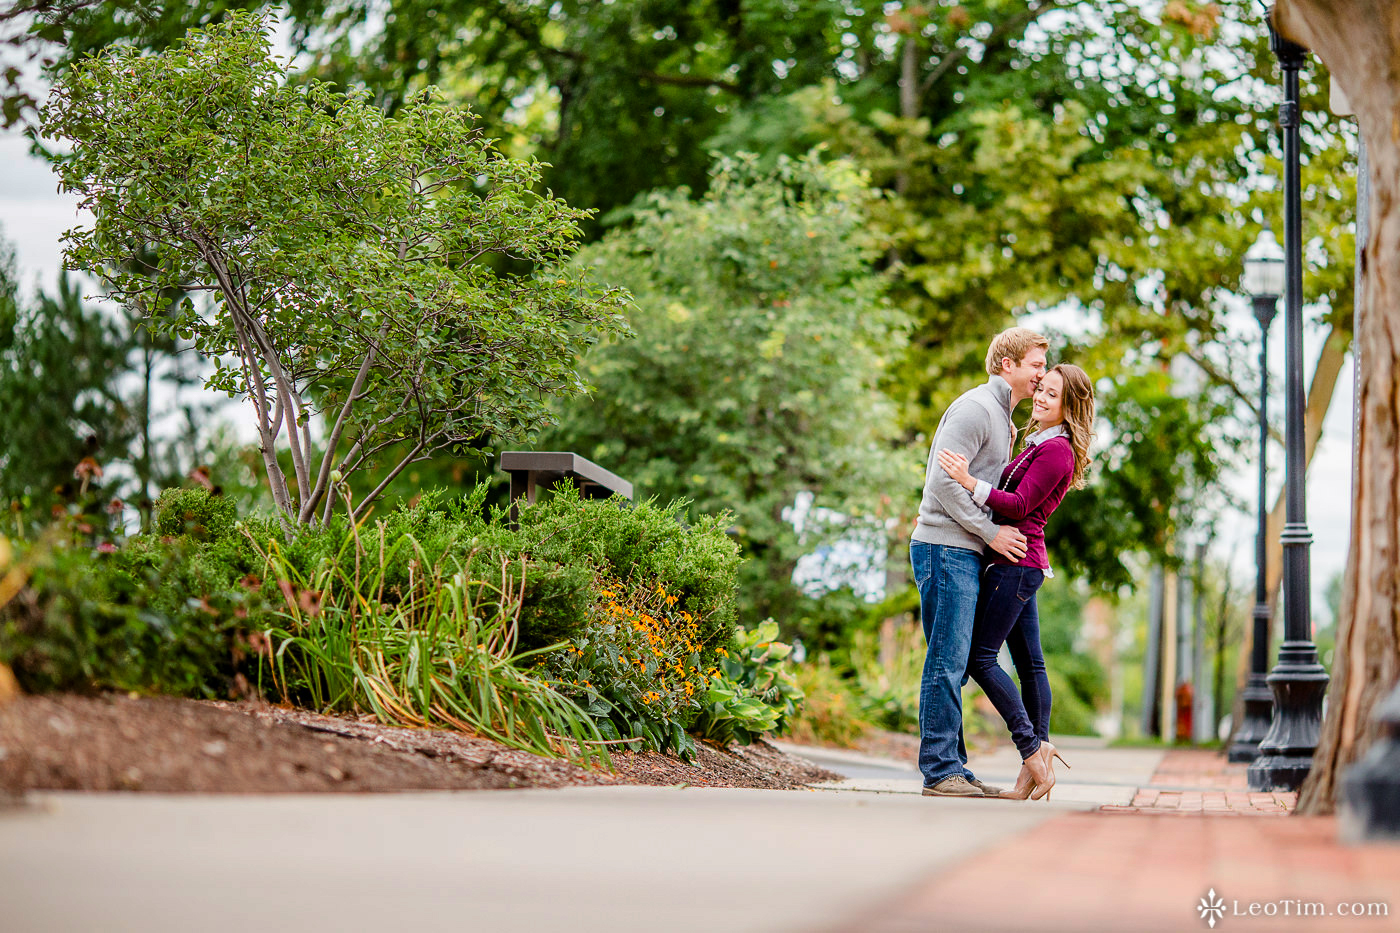 franklin-square-syracuse-engagement-photos-01.jpg